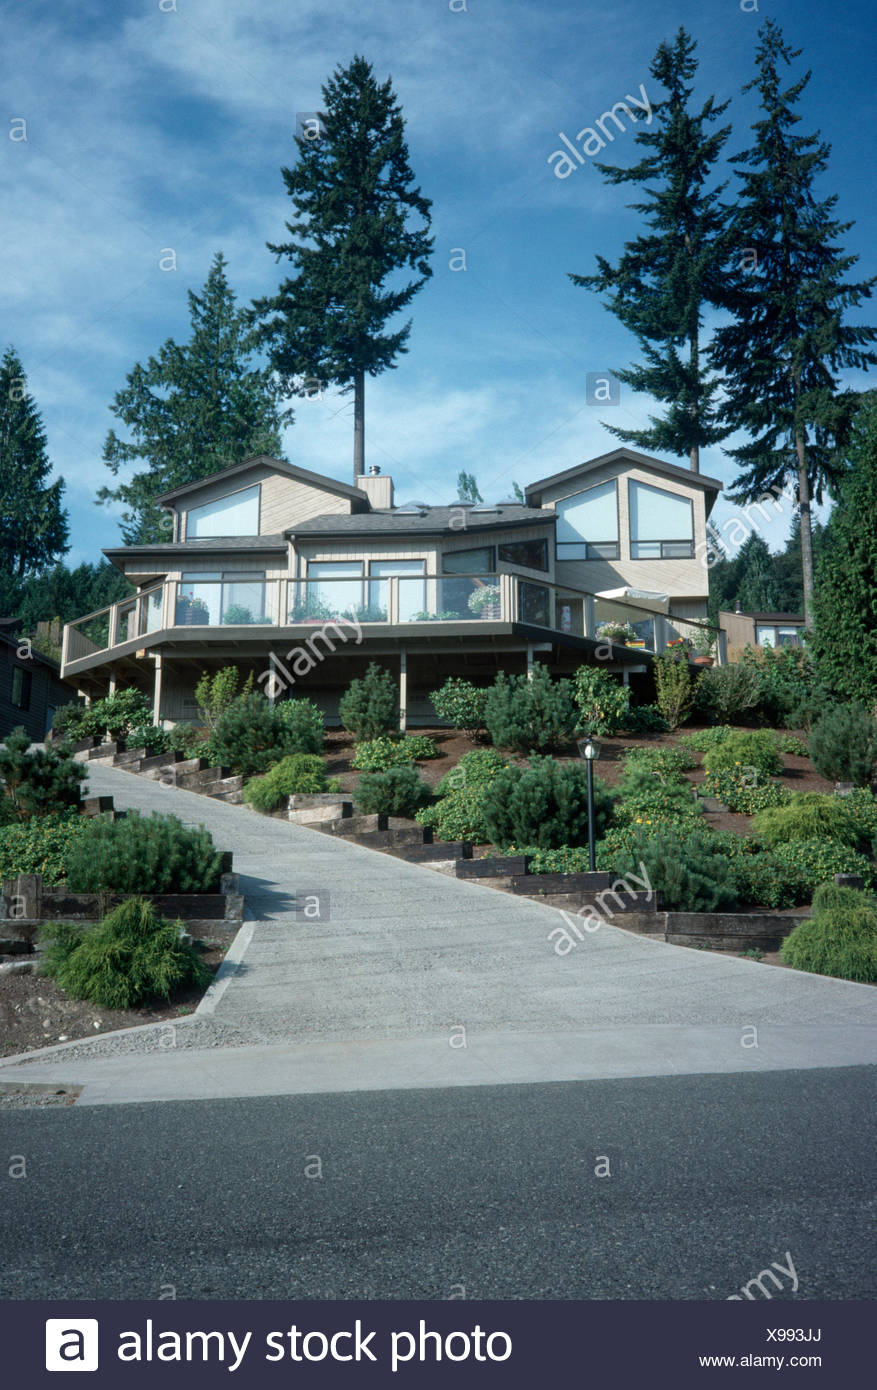 Exterior of a modern North American house with a paved path through neat borders with low growing green shrubs - Stock Image